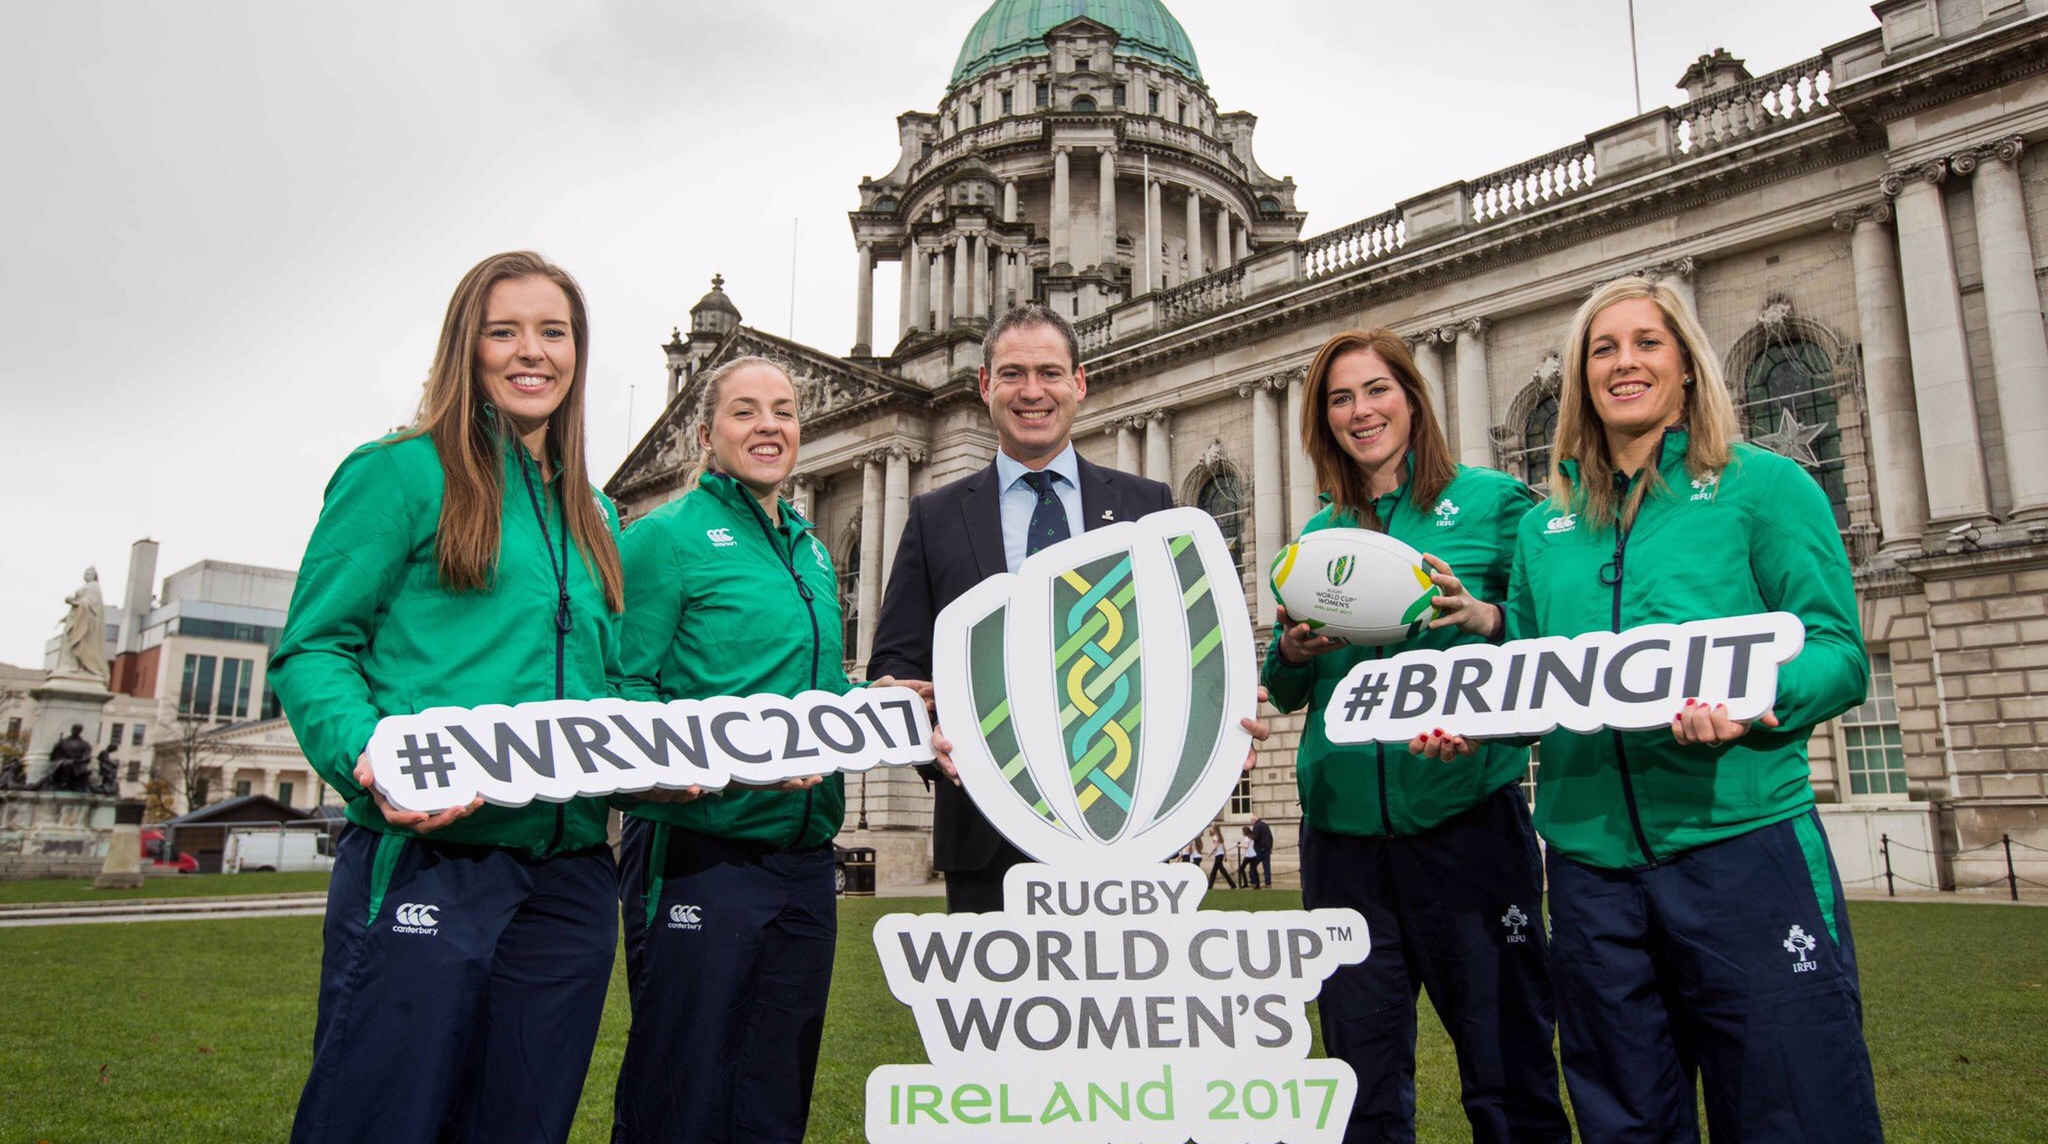 6748e44100c97 Ulster Rugby | Visiting Belfast for the Women's Rugby World Cup?